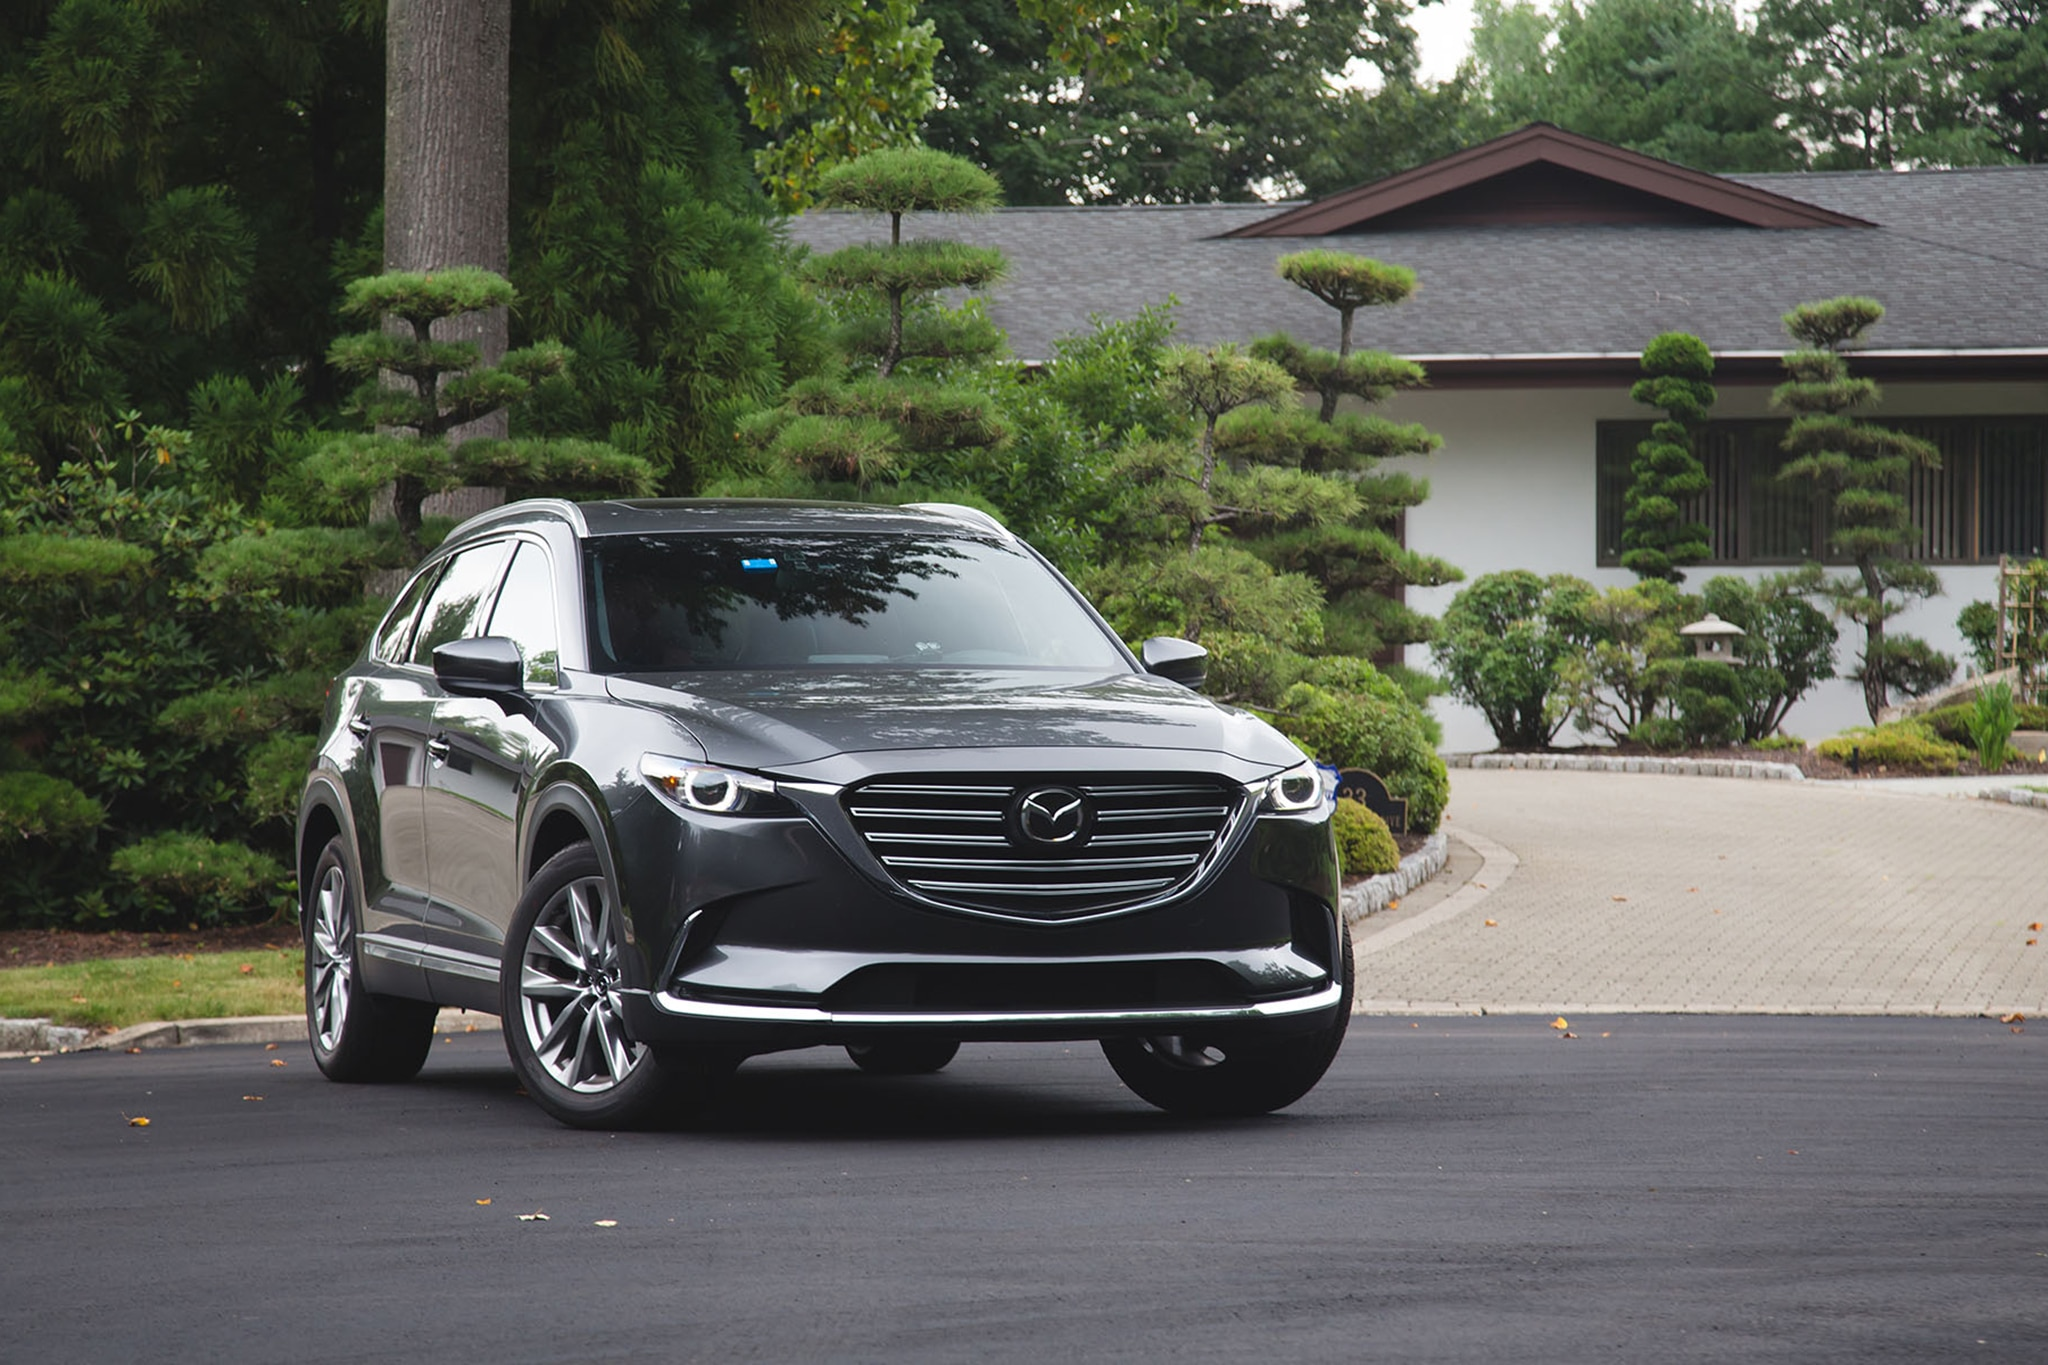 2017 mazda cx-9 one week review | automobile magazine